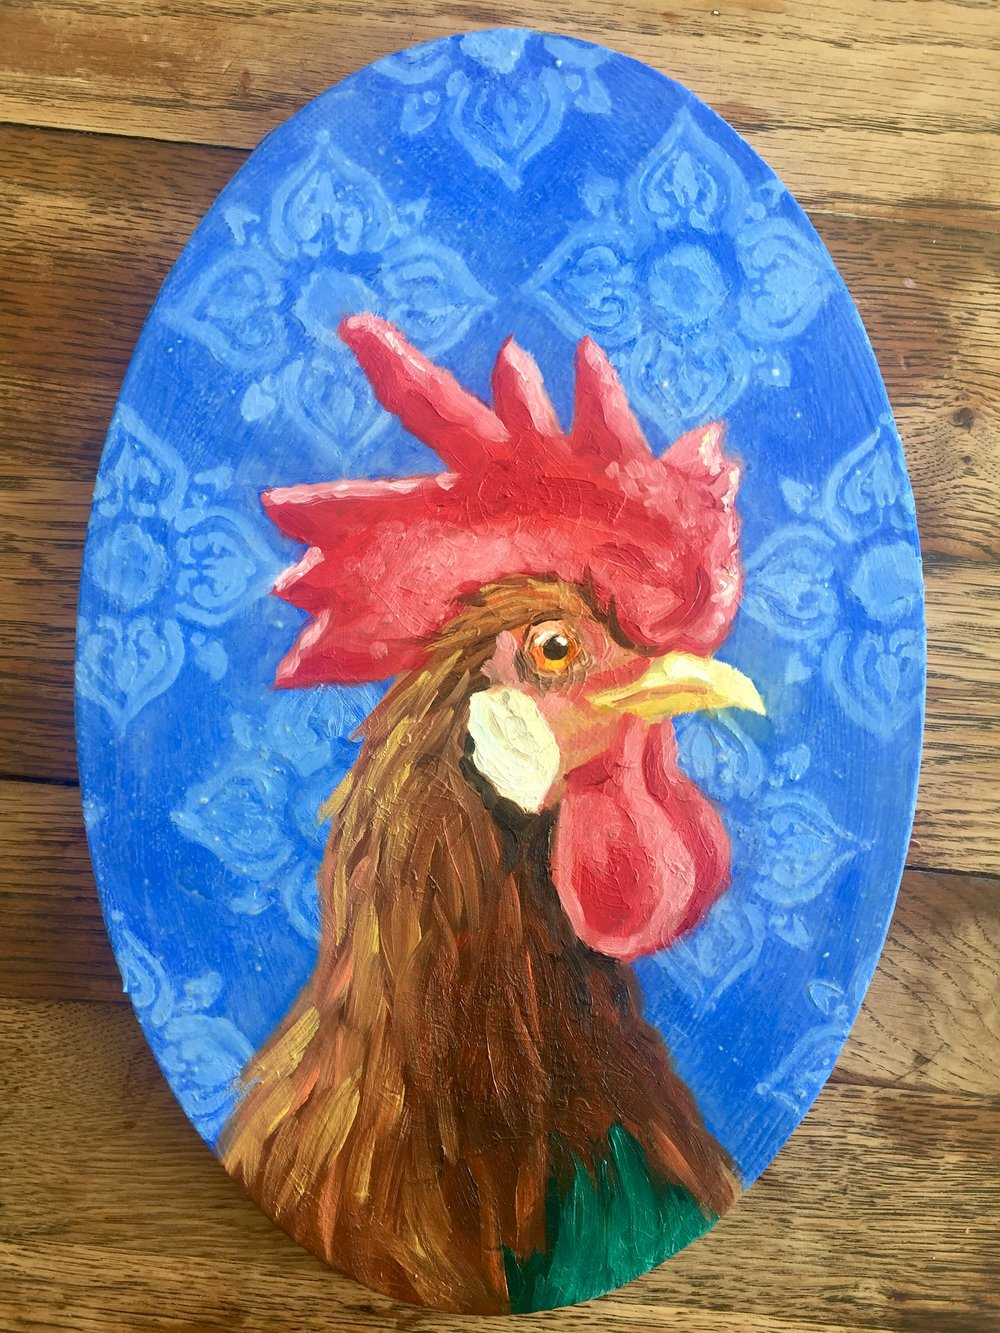 "Today's rooster portrait, 8 x 11"" oval, oil on canvas"